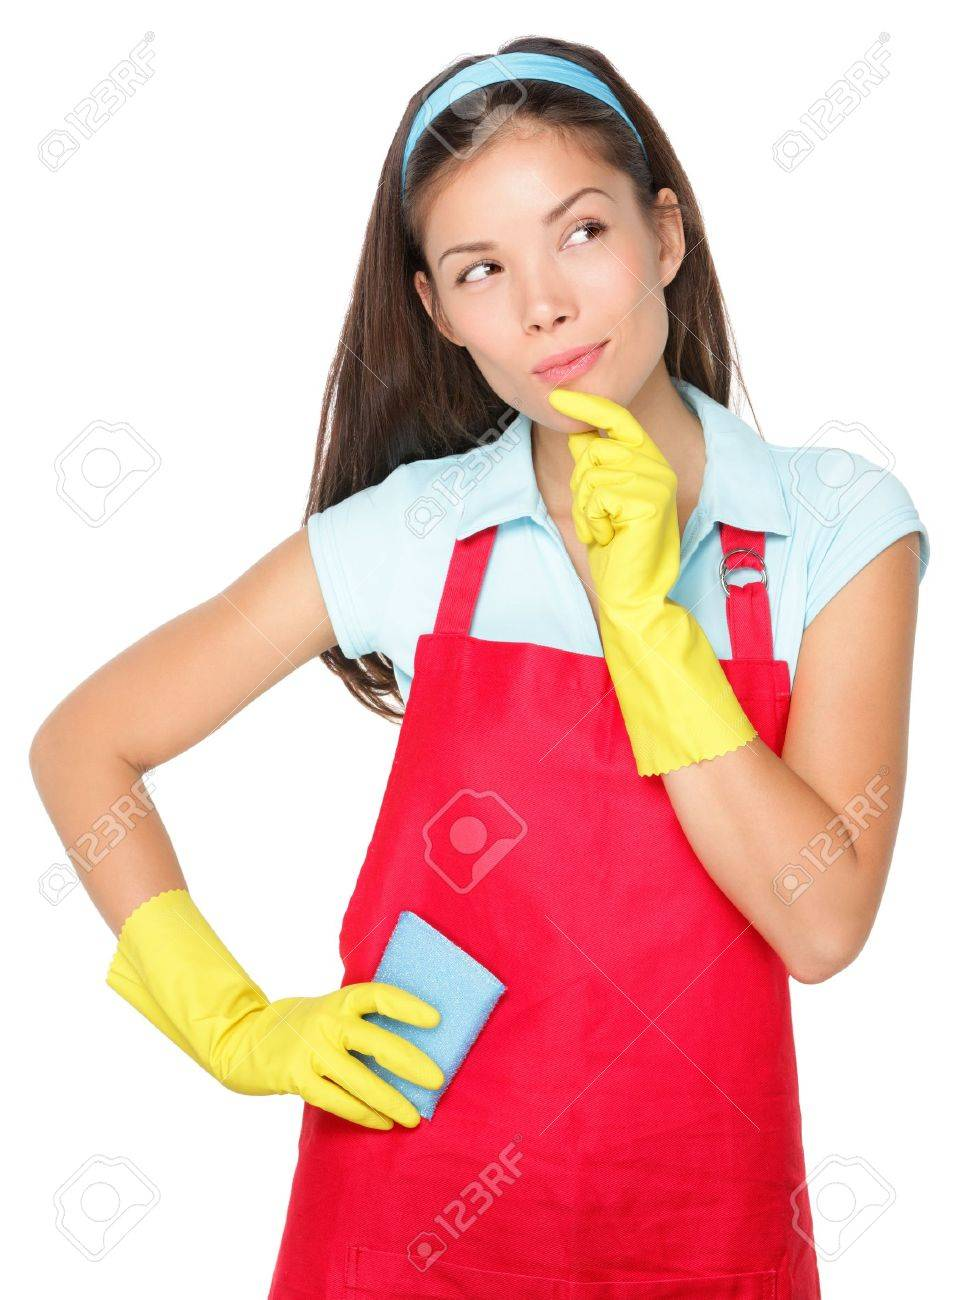 White gloves apron cleaning services - Cleaning Lady Thinking Isolated On White Background Stock Photo 12357158